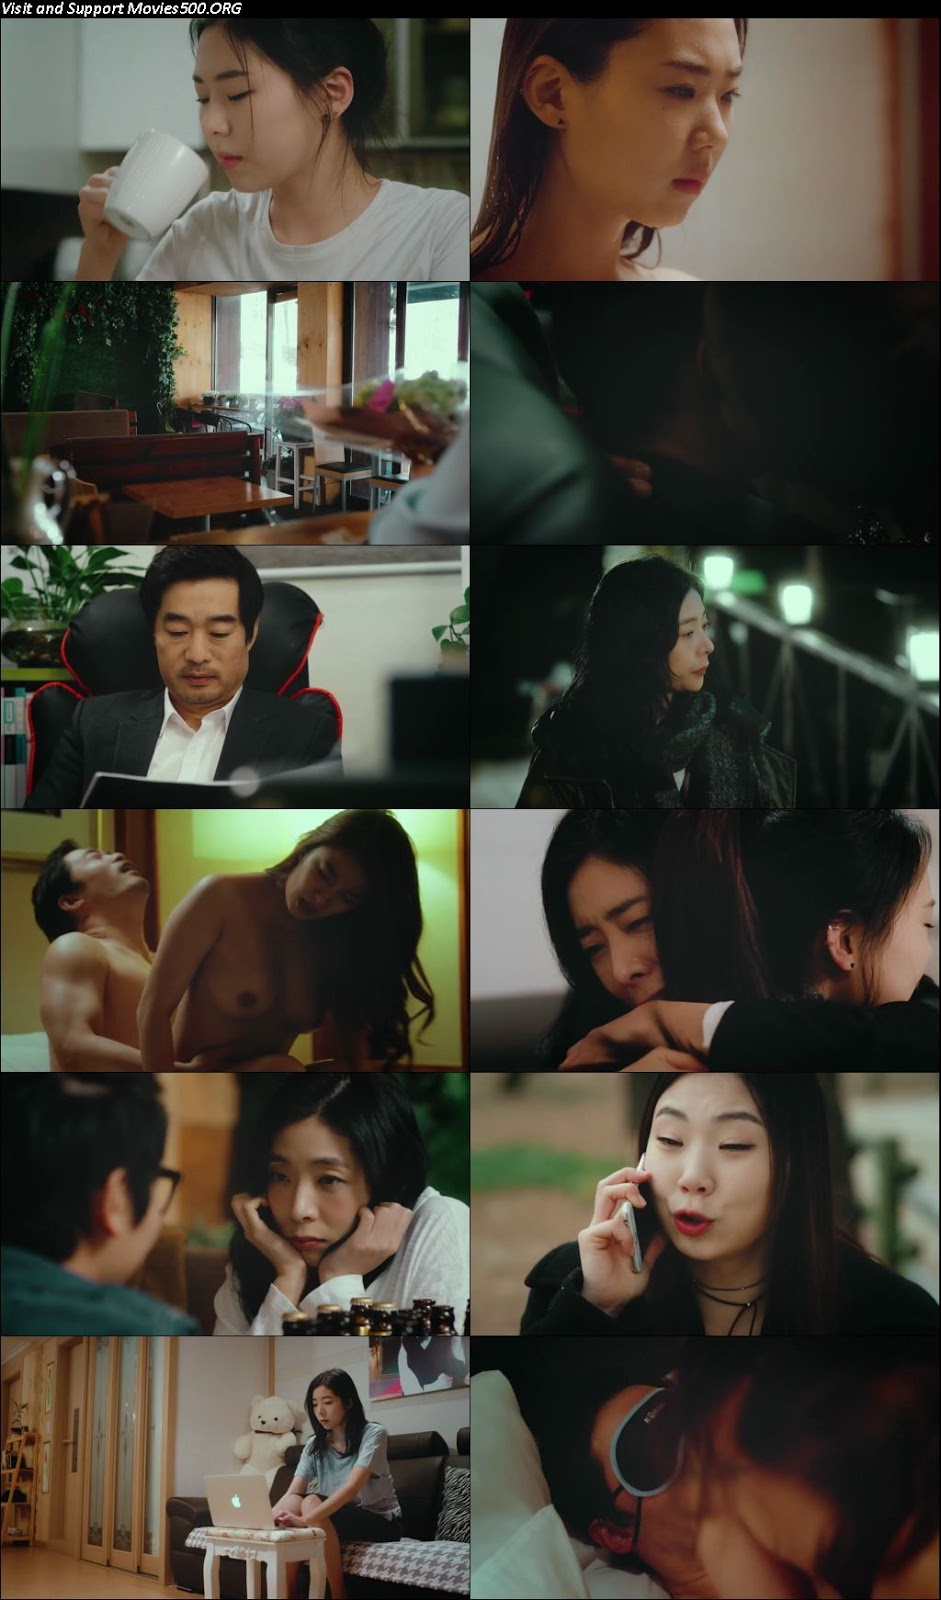 The Sisters's Scandal 2017 Adult 18+ Movie HDRip 720P 600MB at freedomcopy.com